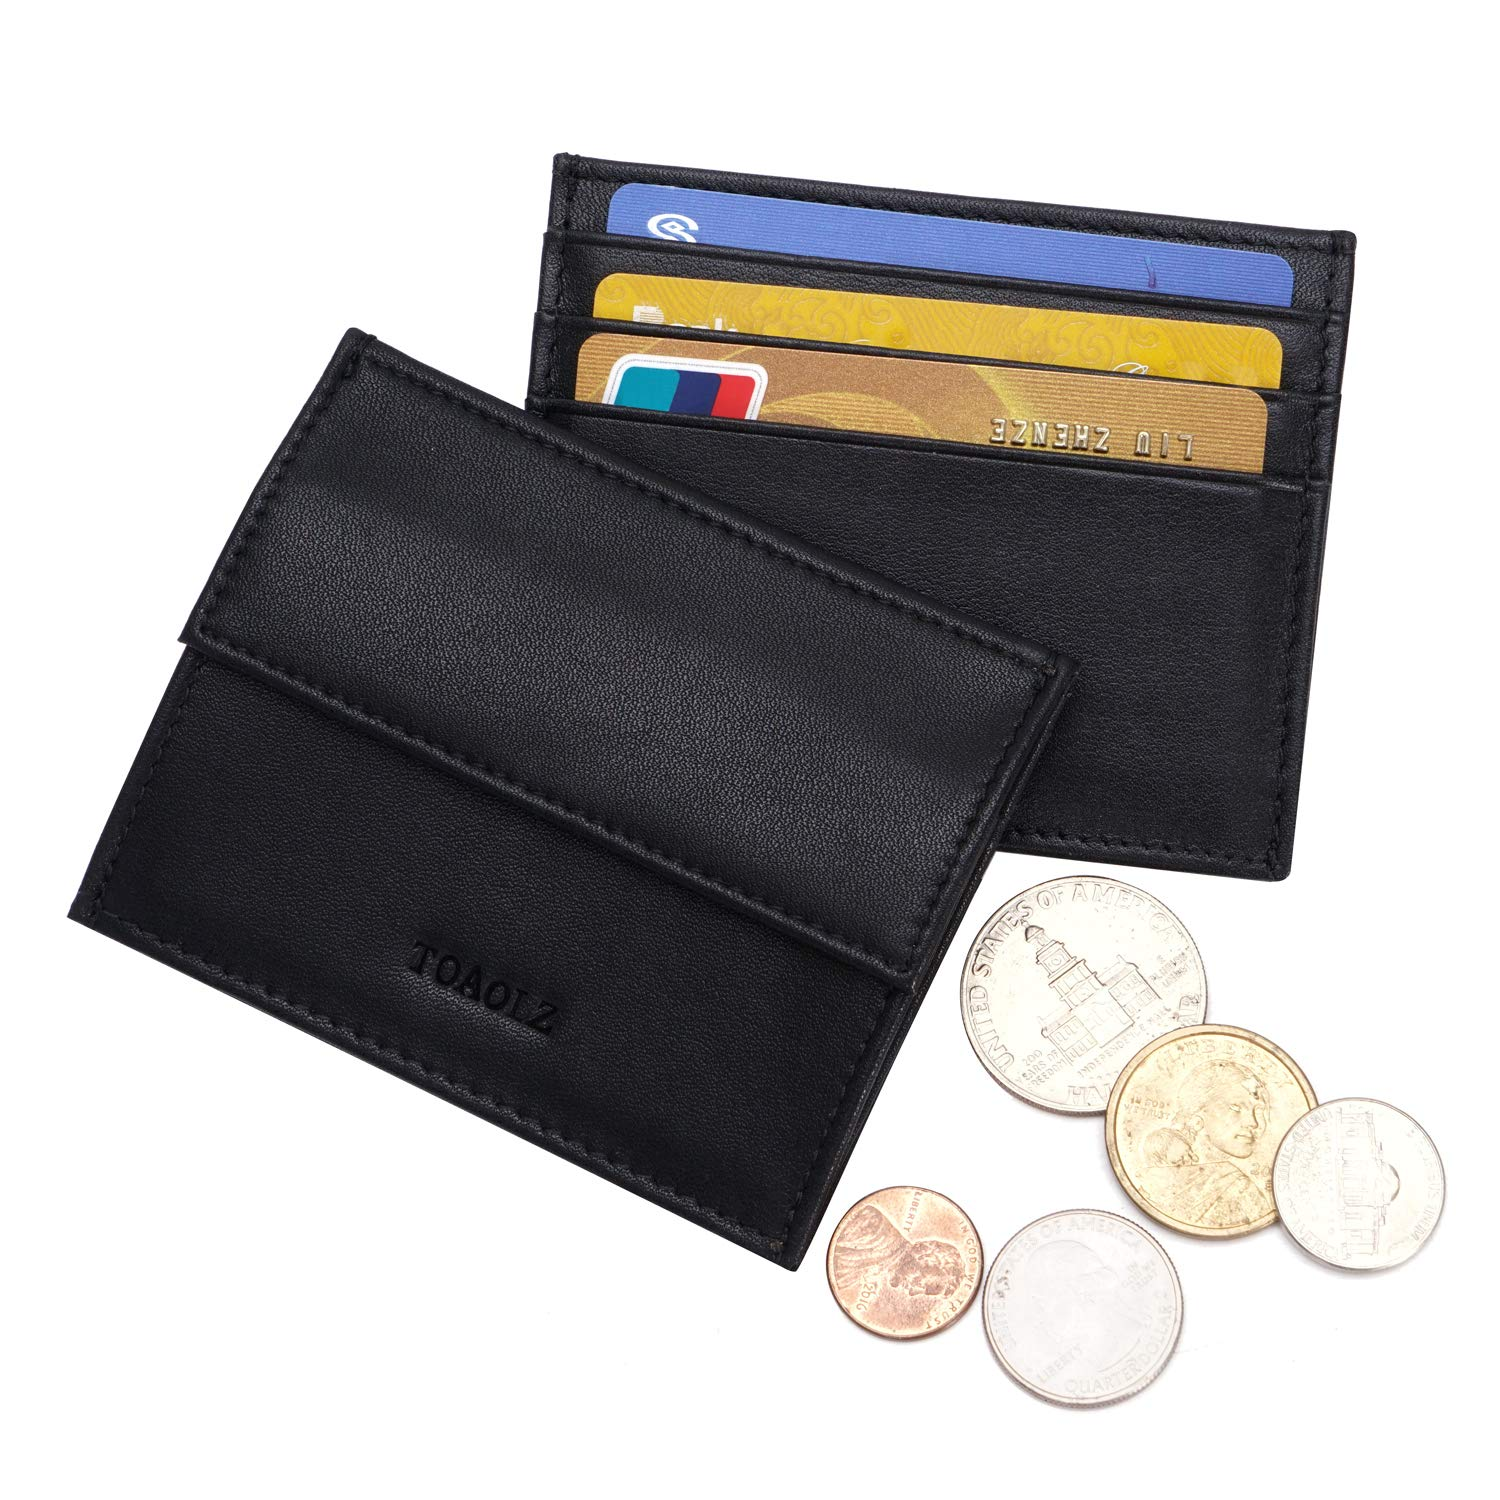 TOAOLZ Slim Card Case Leather Wallet for Men RFID Credit Card Holder with Thin Front Pocket Black Mini Card Wallet